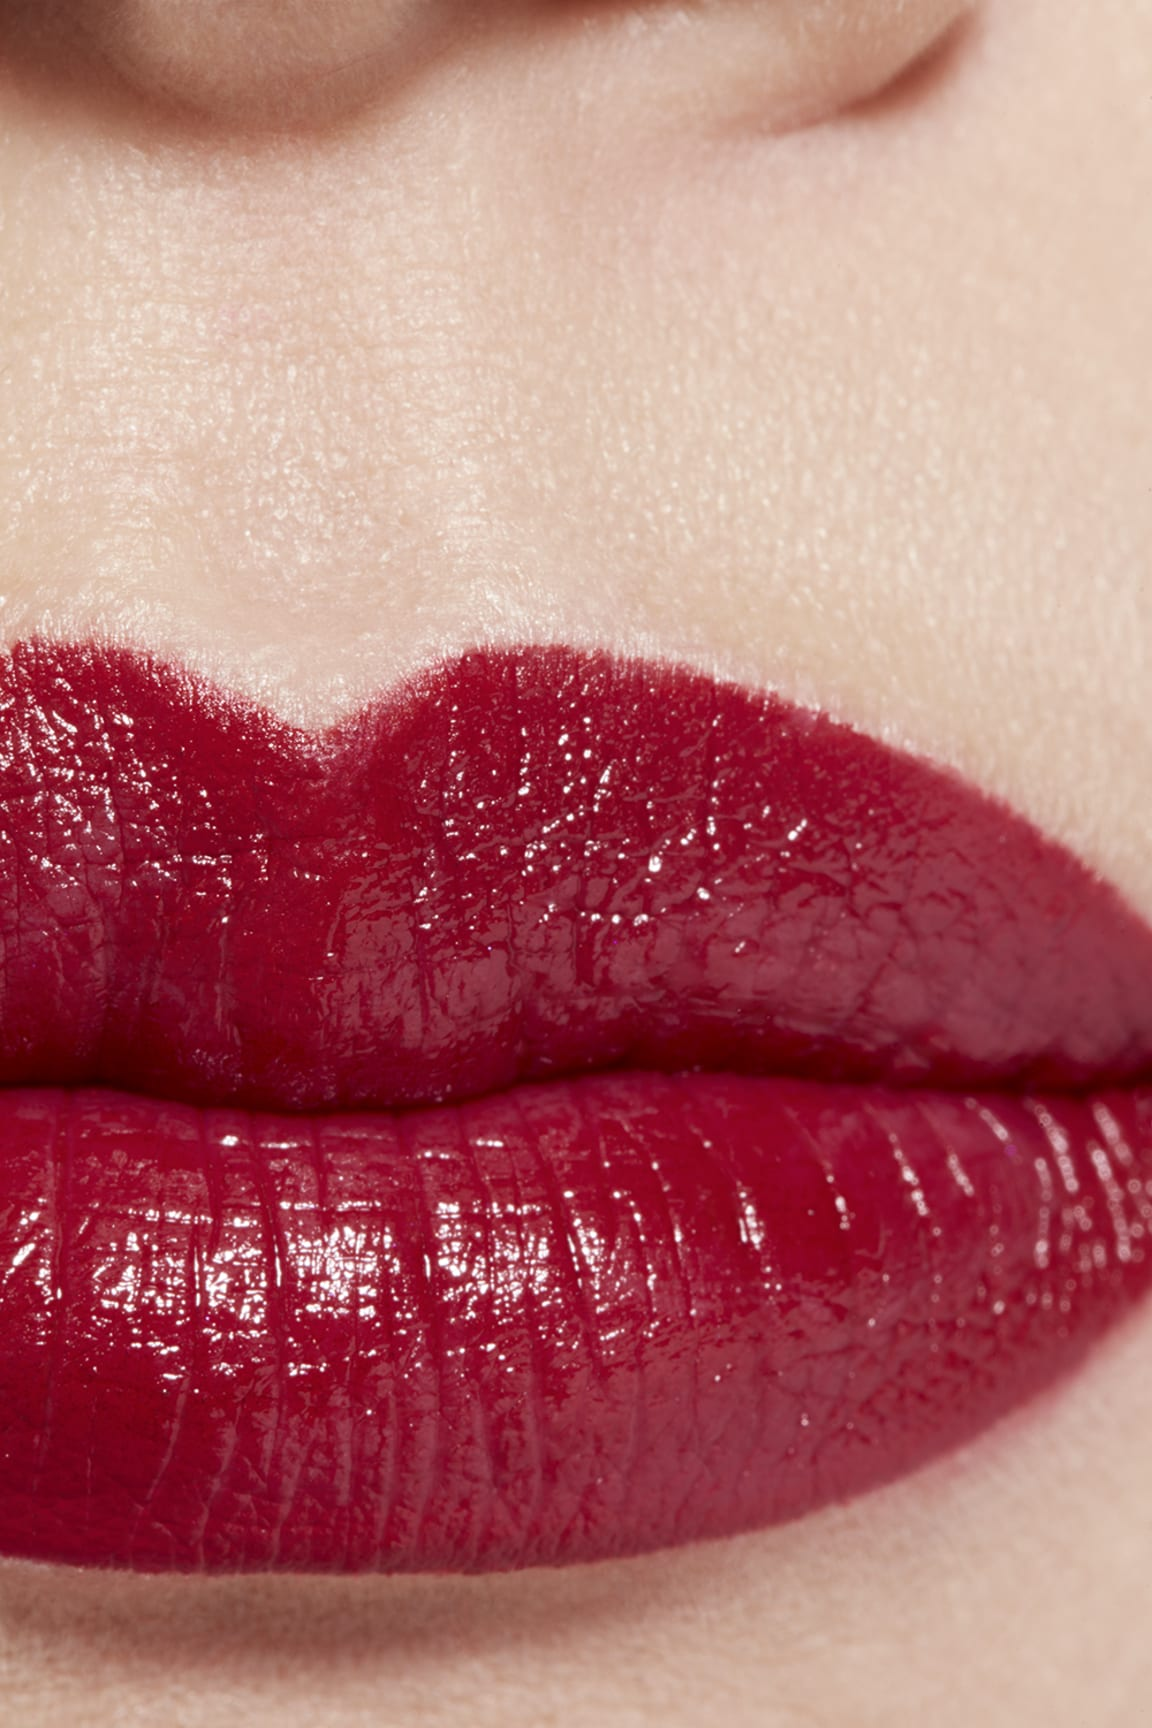 Application makeup visual 1 - ROUGE ALLURE 104 - PASSION